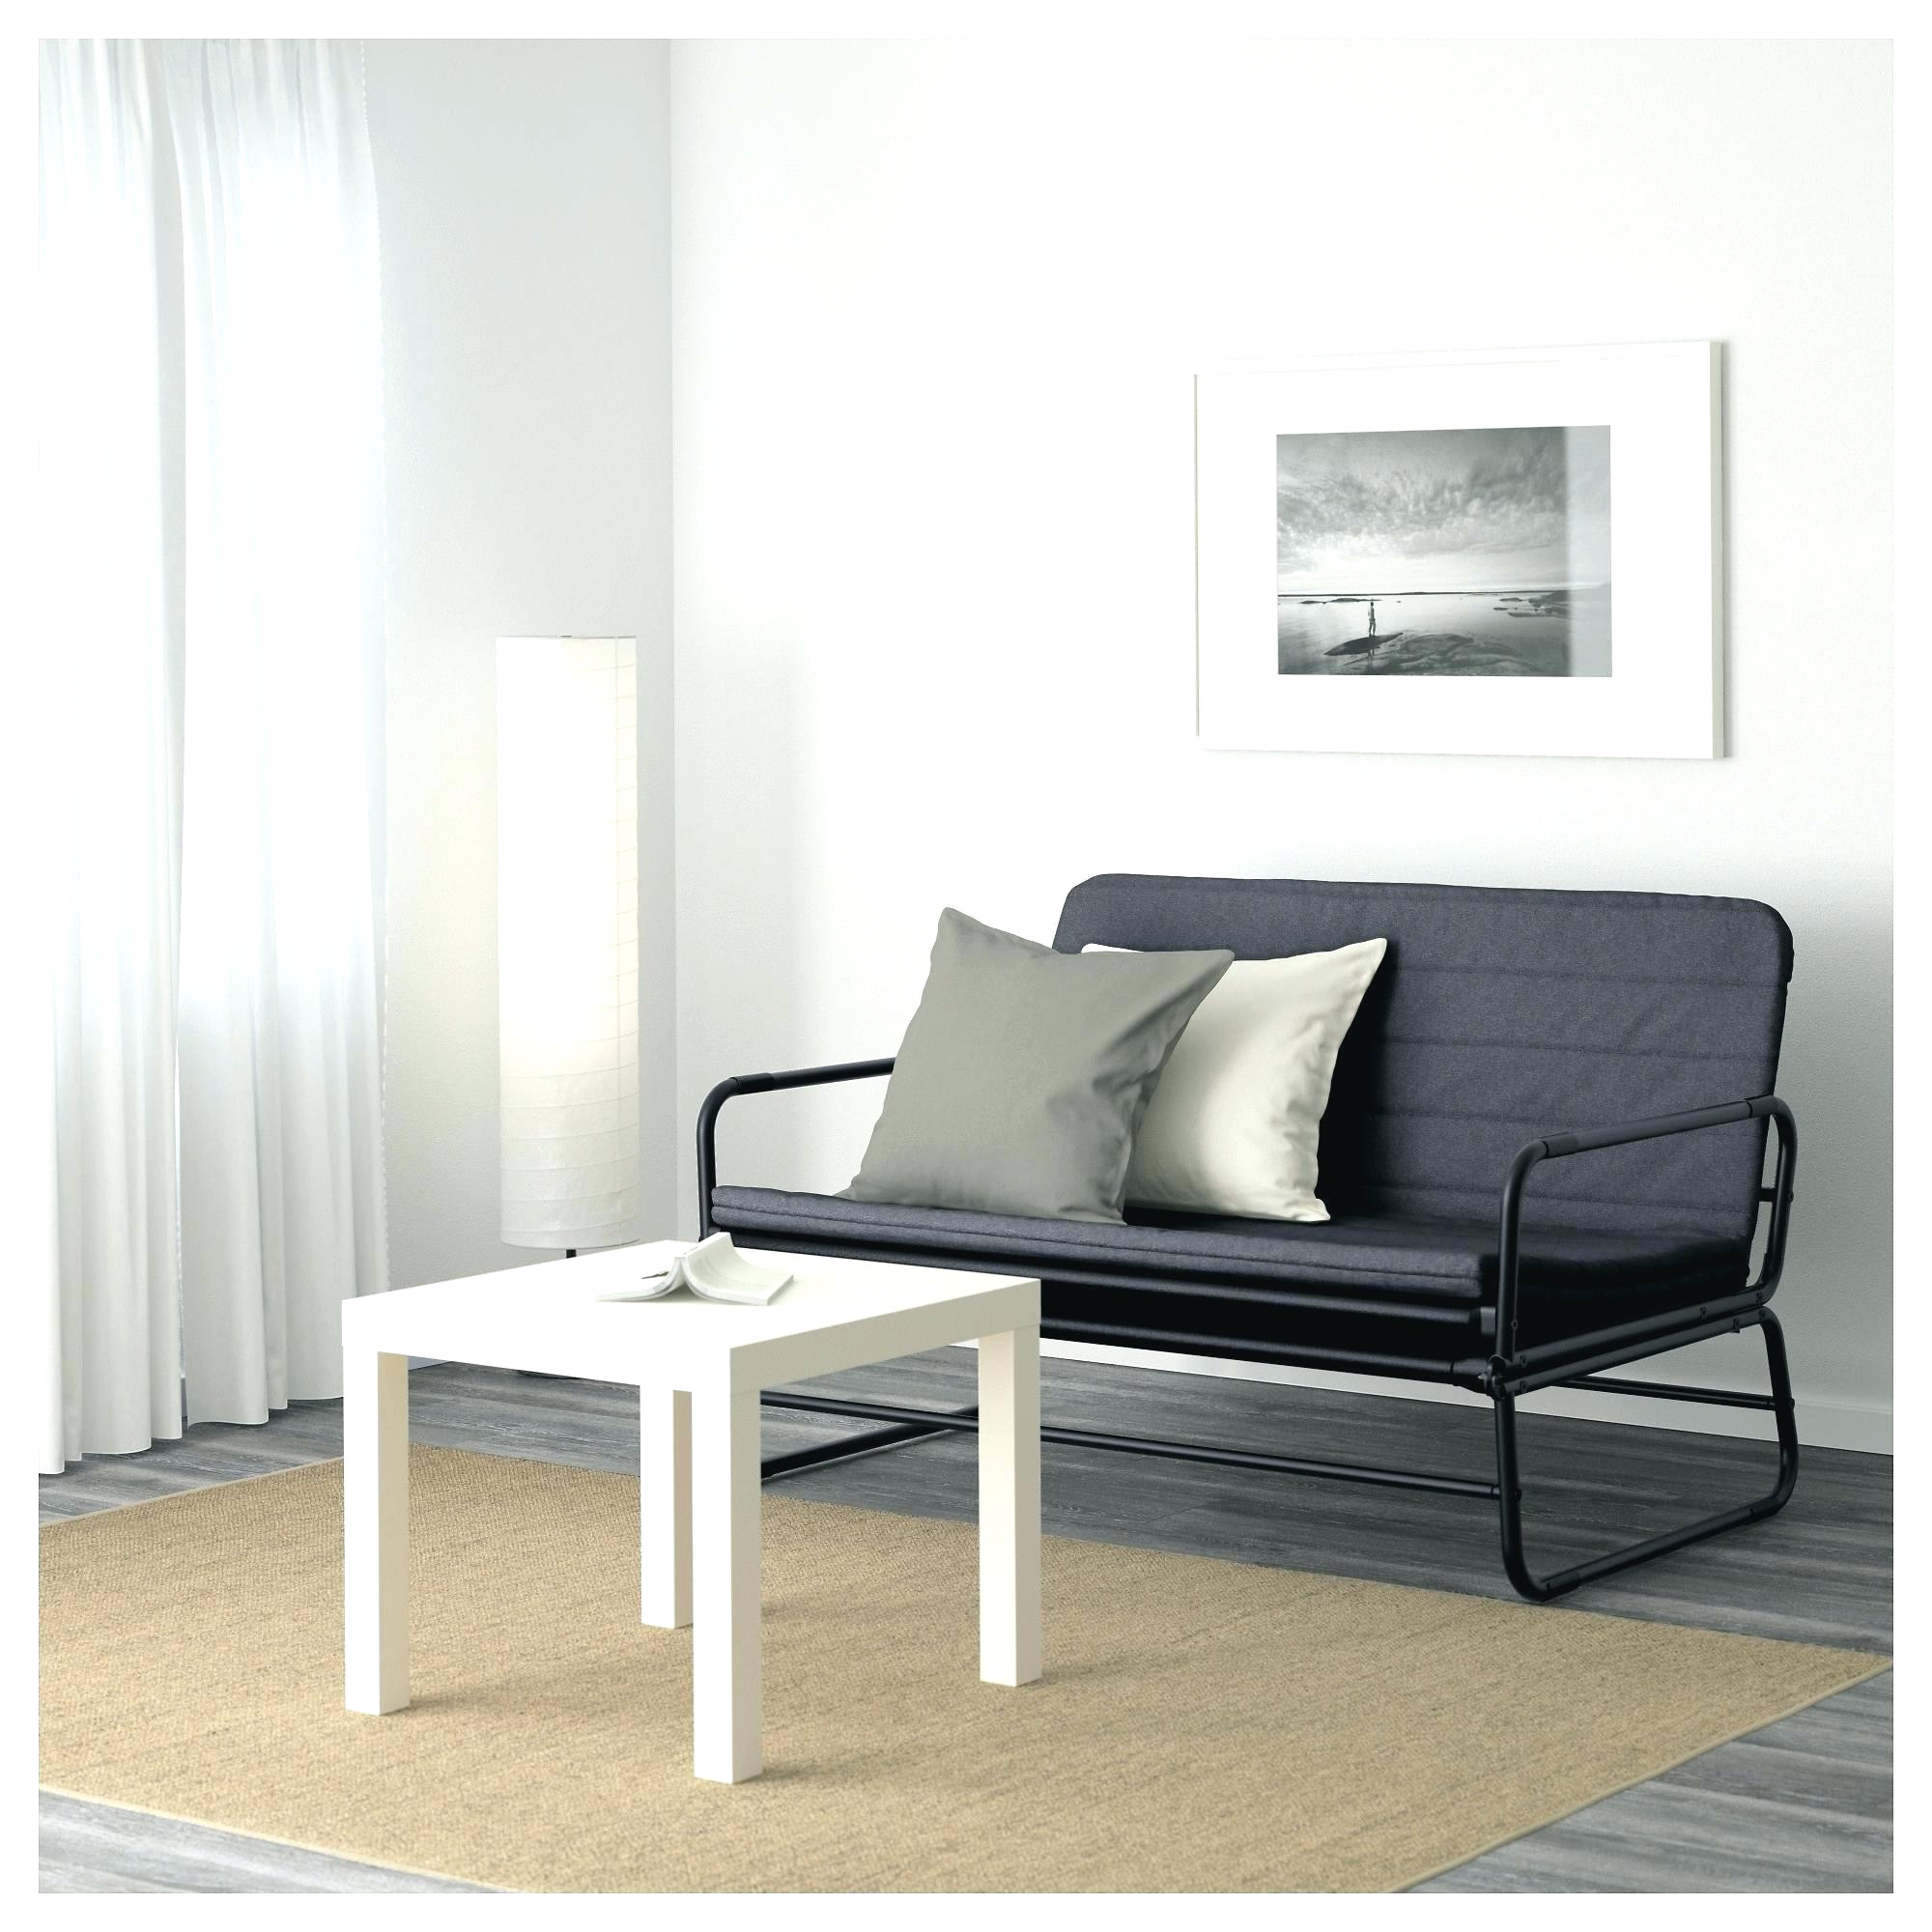 Canapé Convertible Ektorp Inspirant Stock Housse Beddinge Ikea Ikea with Housse Beddinge Ikea Best